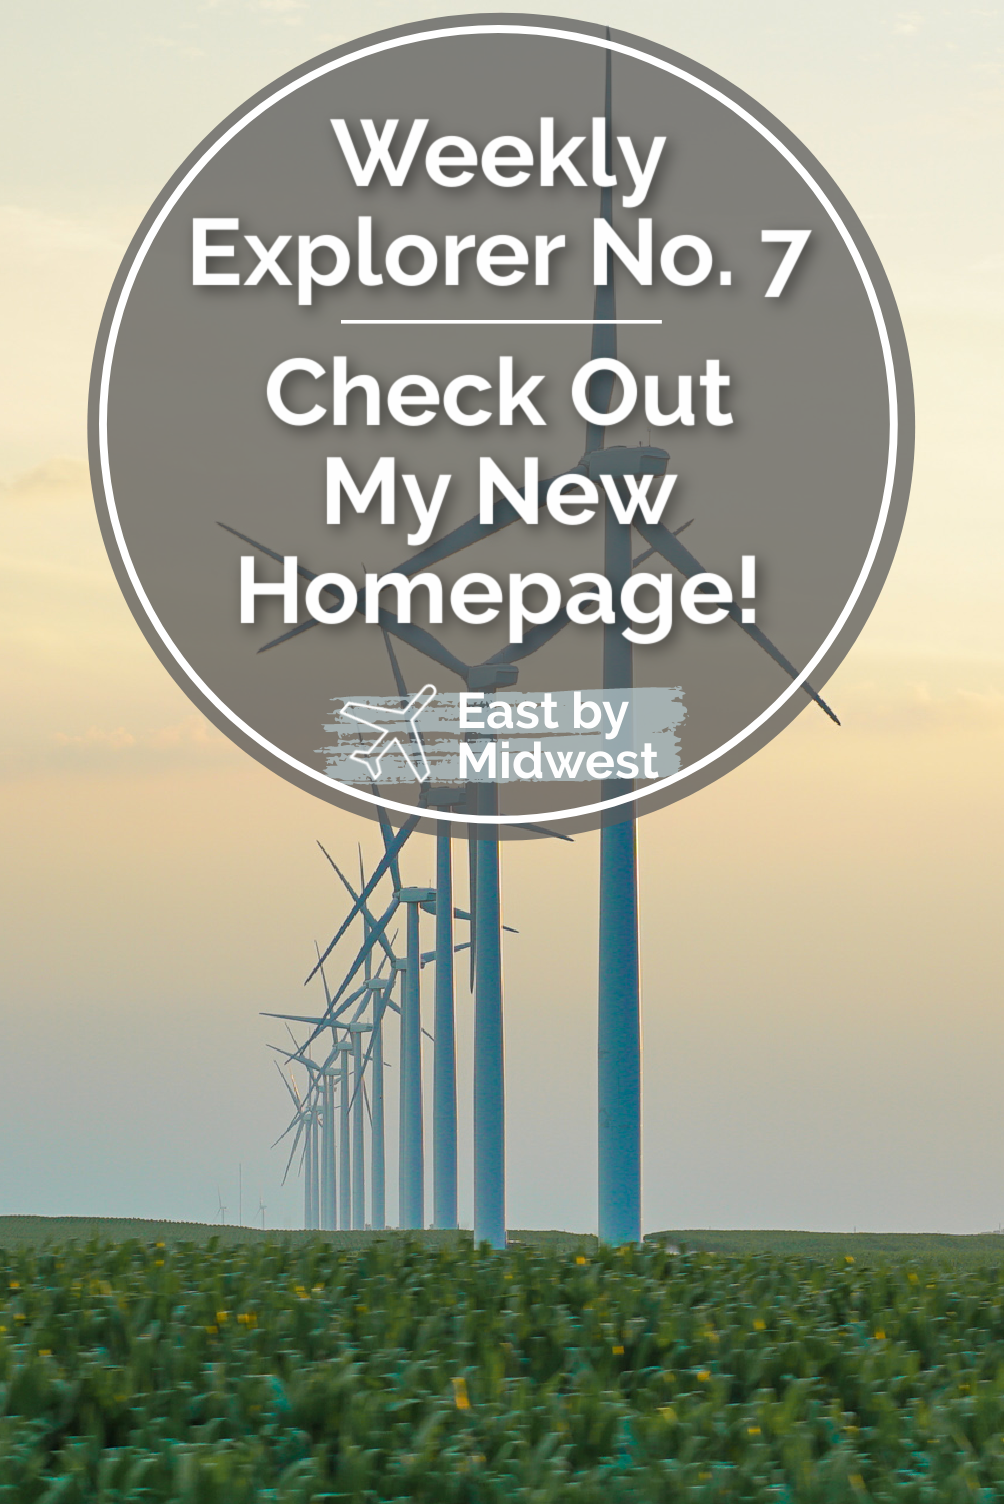 Weekly Explorer No. 7: Check Out My New Homepage!